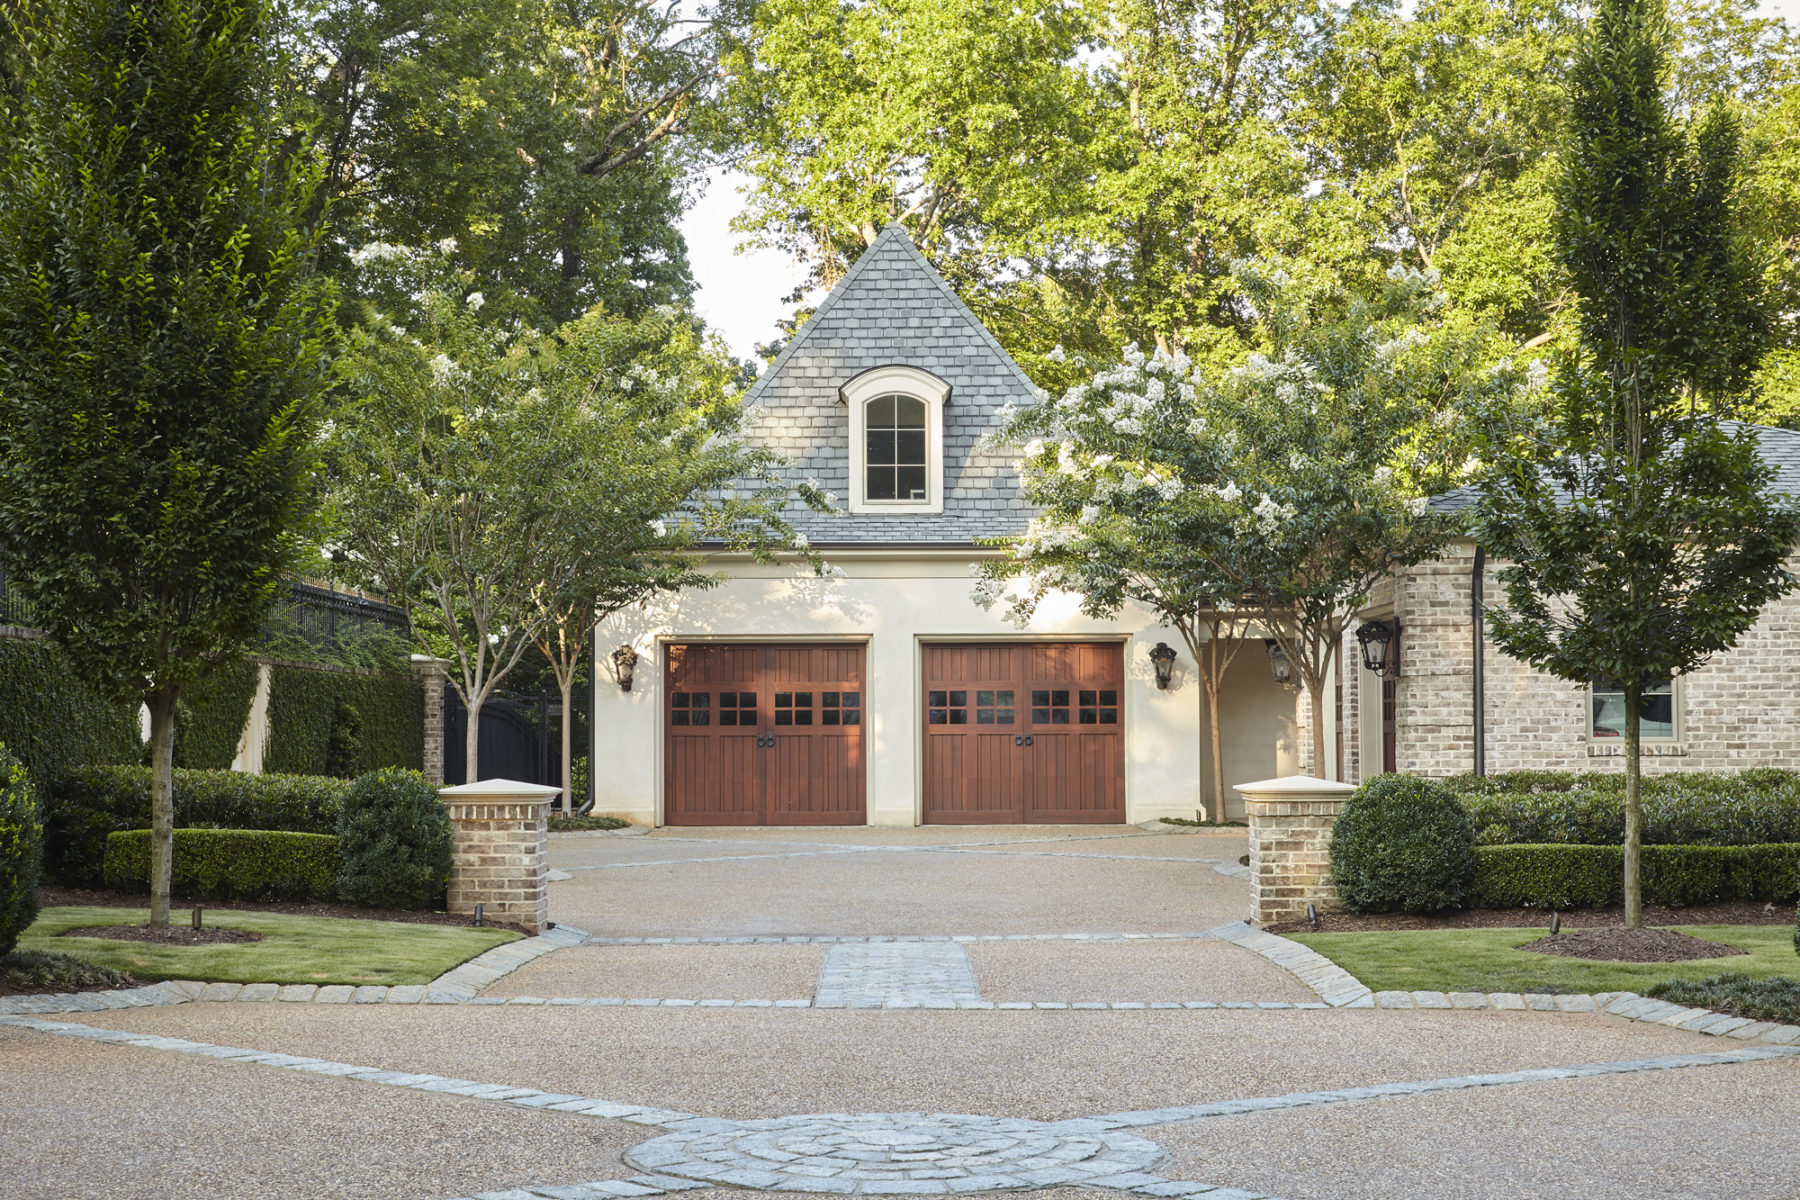 Primary entrance court to detached garage by Harrison Design with granite cobblestones horn beams and white crape myrtles